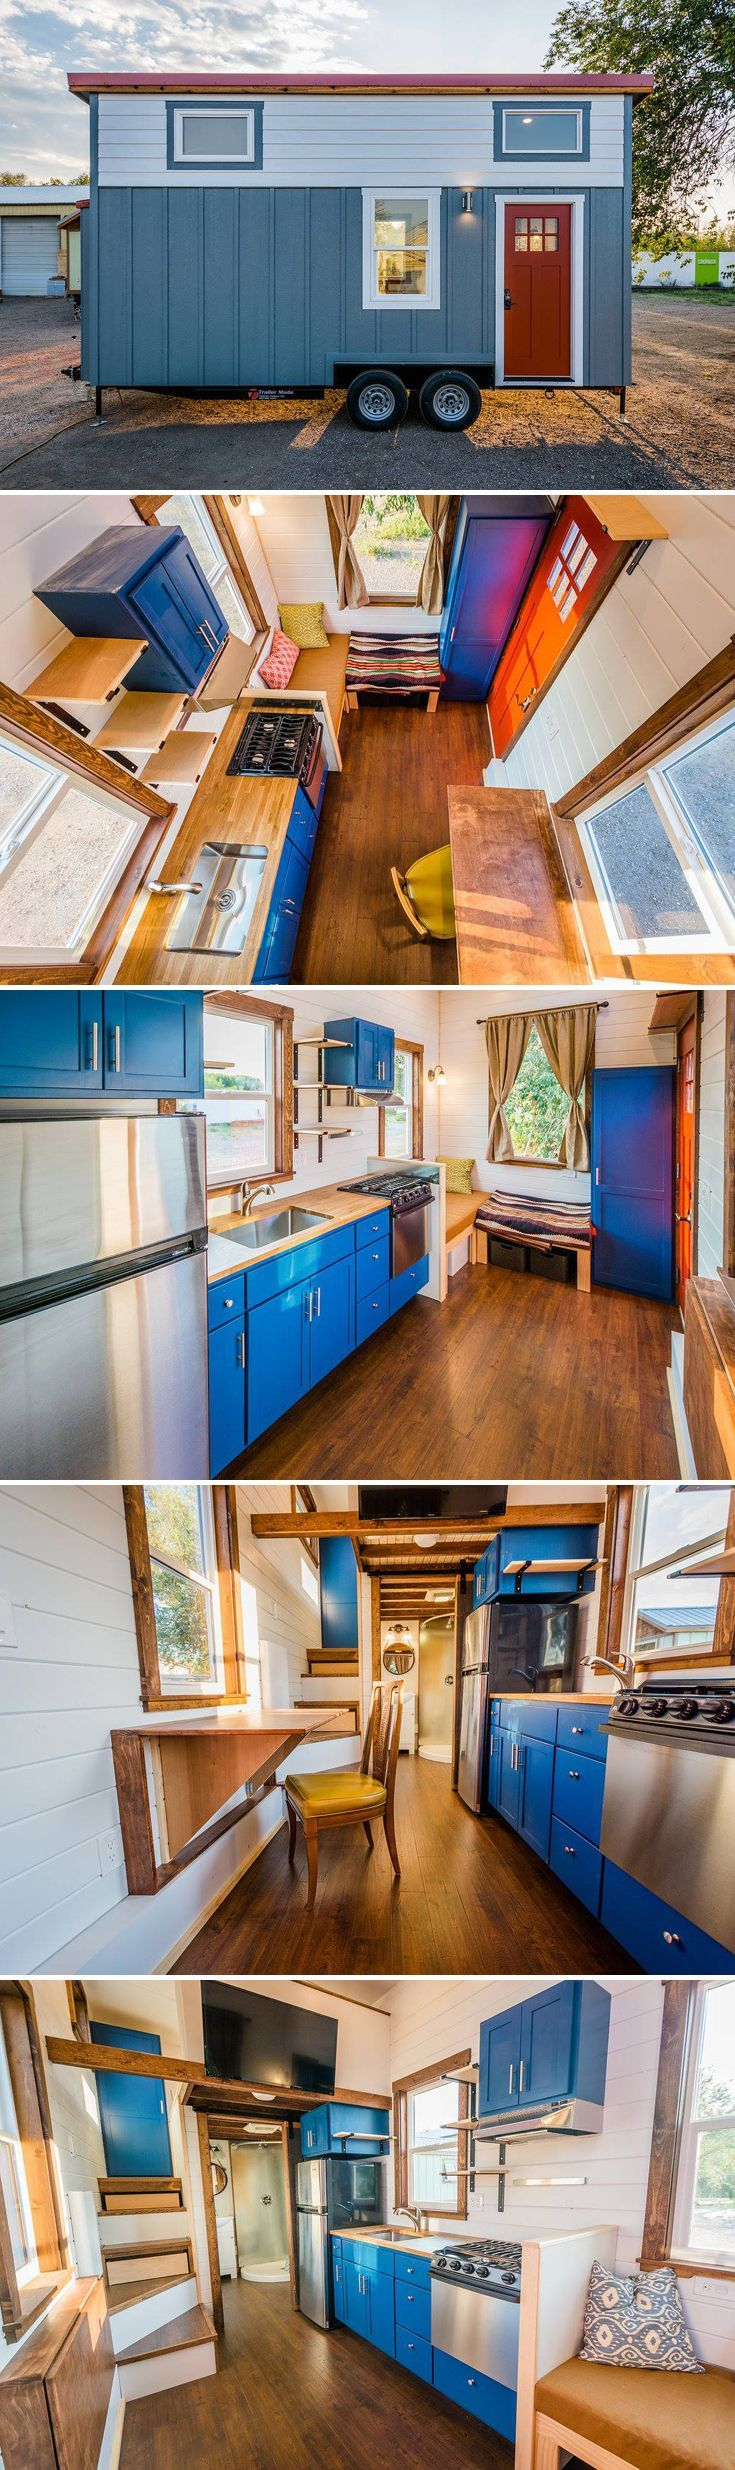 Built with a priority on storage space, this home by Mitchcraft Tiny Homes packs everything their client needs into a 20-foot tiny house on wheels.